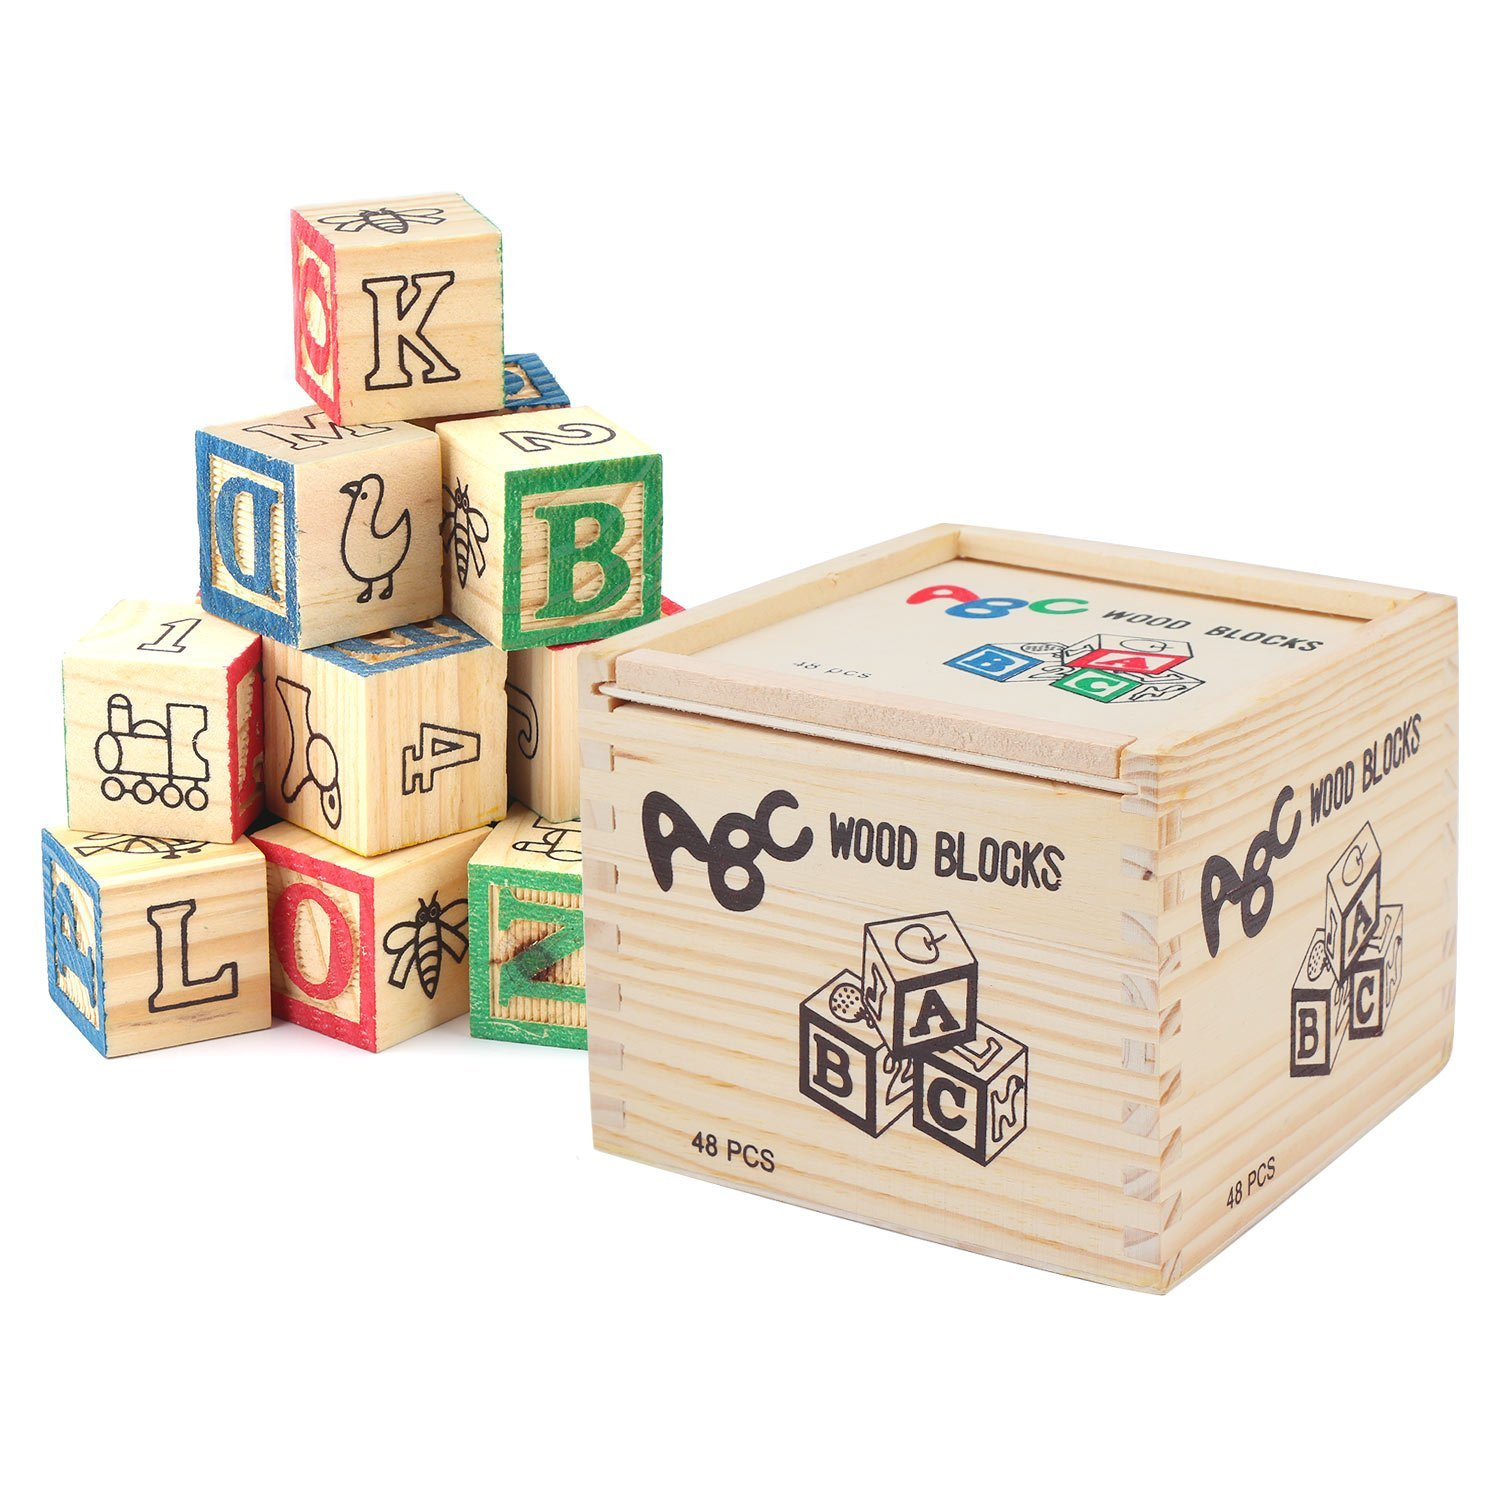 Segarty Wooden Alphabet Blocks, 48pcs Building Blocks Toys- ABC/123 Learning, Counting, Stacking-Wood Letter Number Blocks Set for Babies Toddlers Kids Children